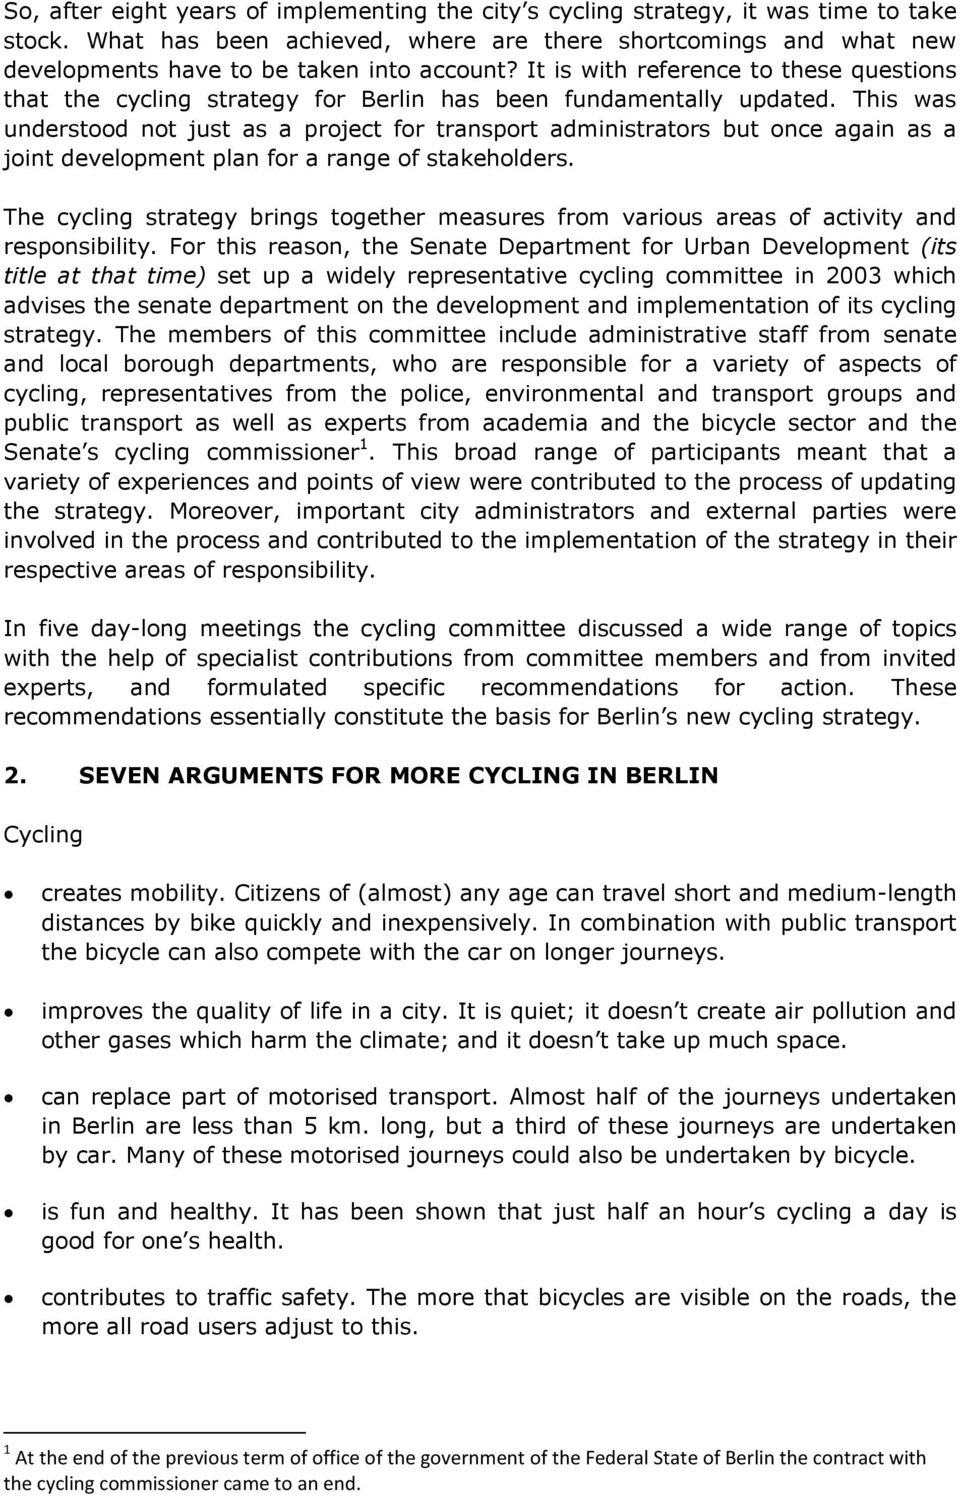 It is with reference to these questions that the cycling strategy for Berlin has been fundamentally updated.